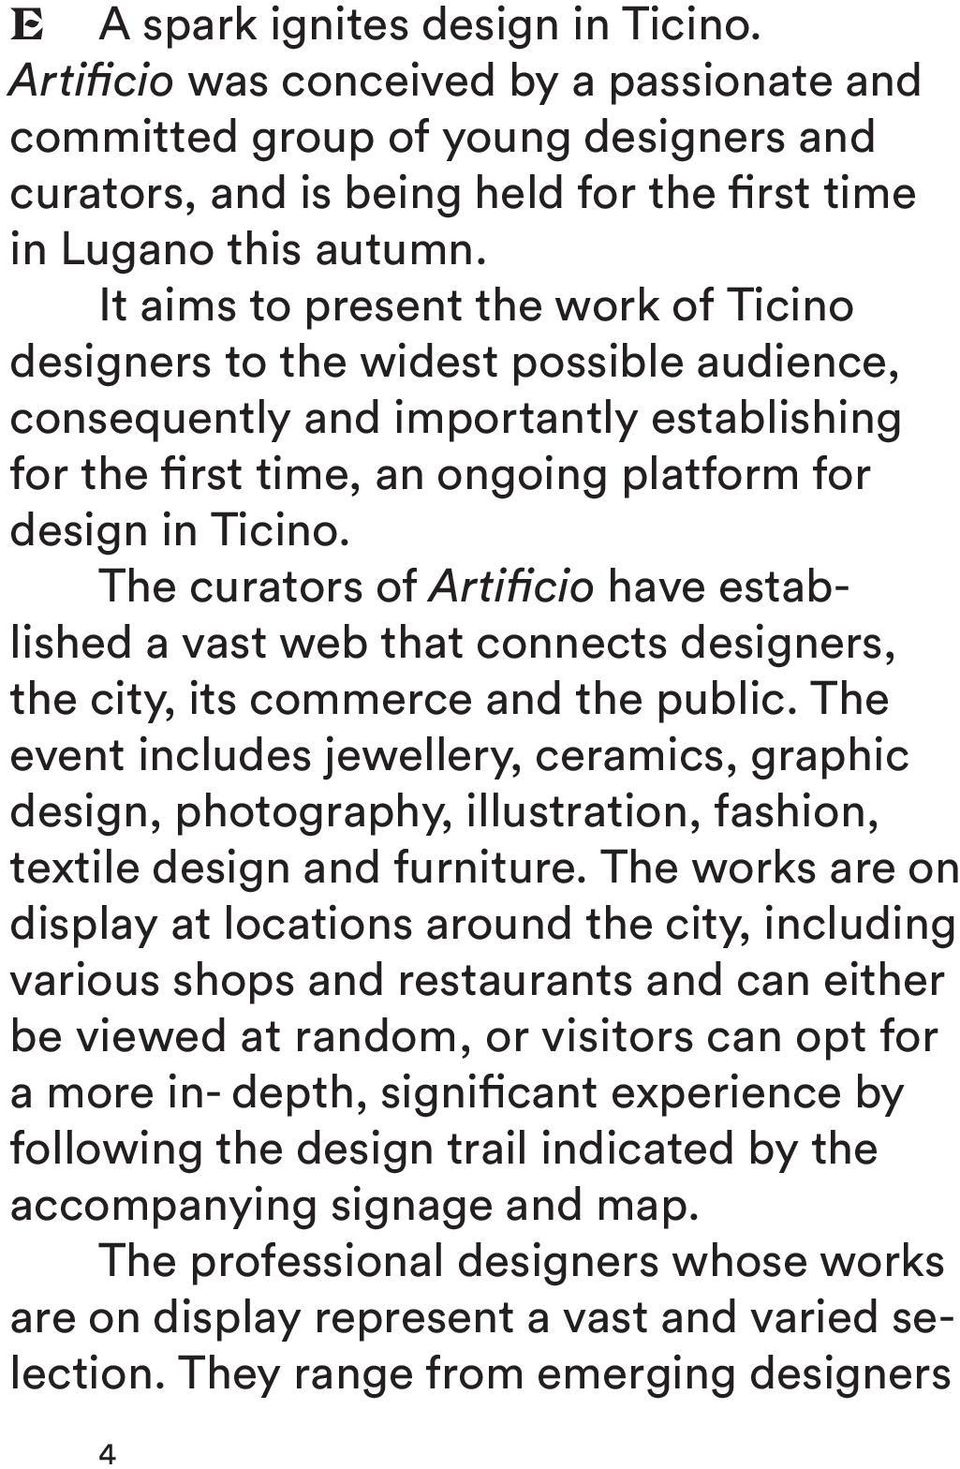 The curators of Artificio have established a vast web that connects designers, the city, its commerce and the public.